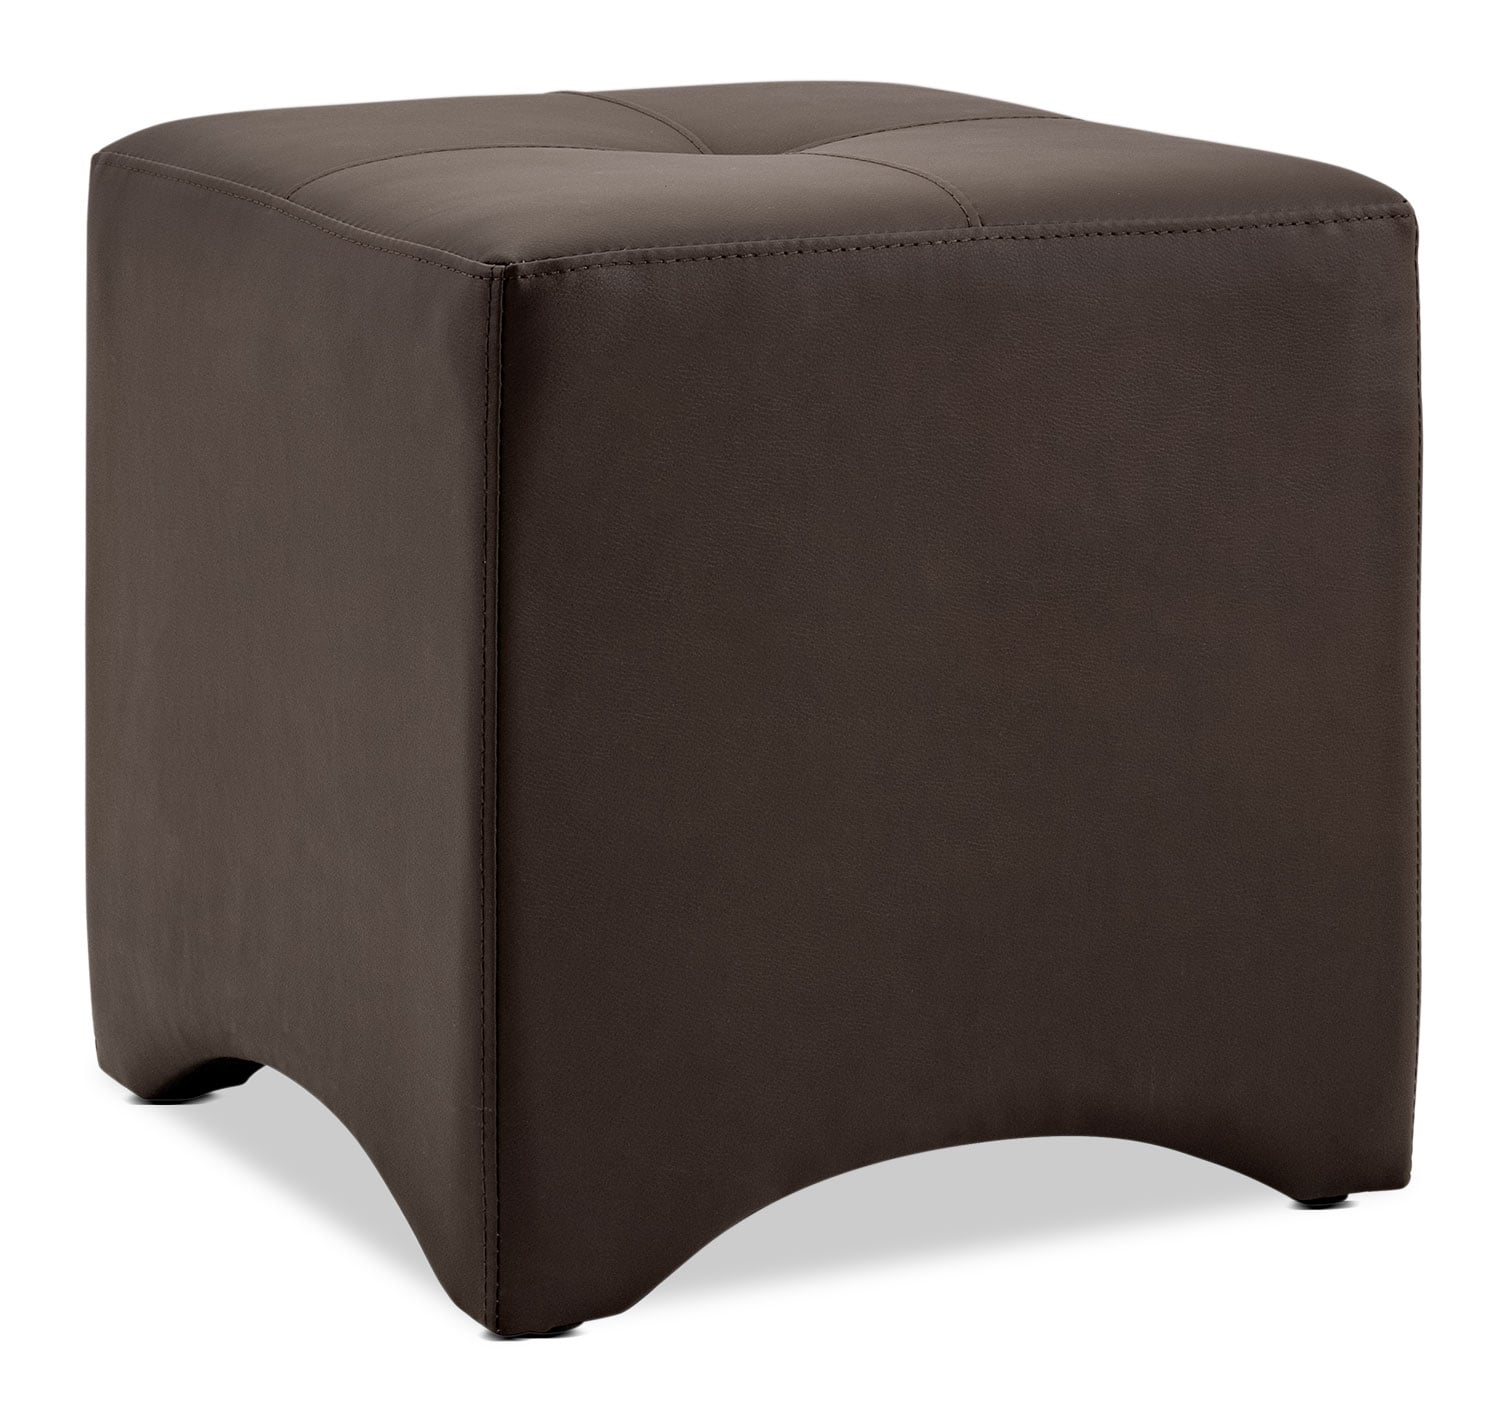 Briel Ottoman – Brown